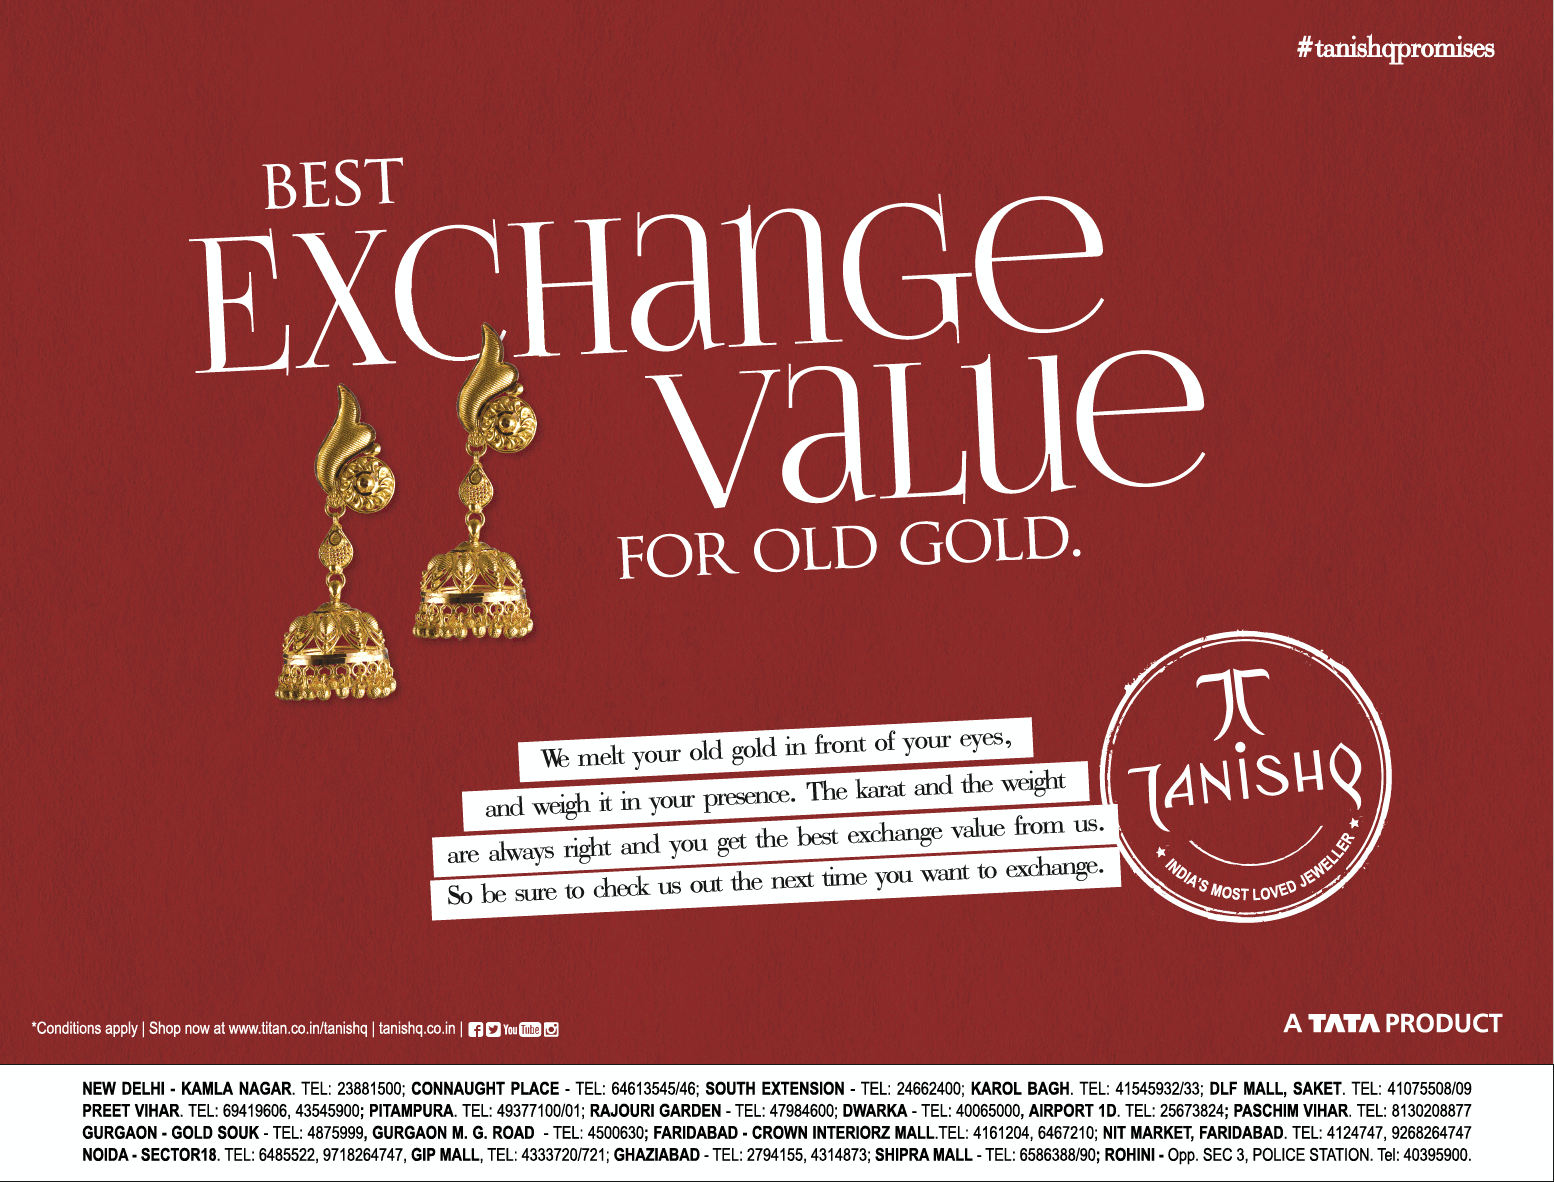 A Tata Product Best Exchange Value For Old Gold Ad